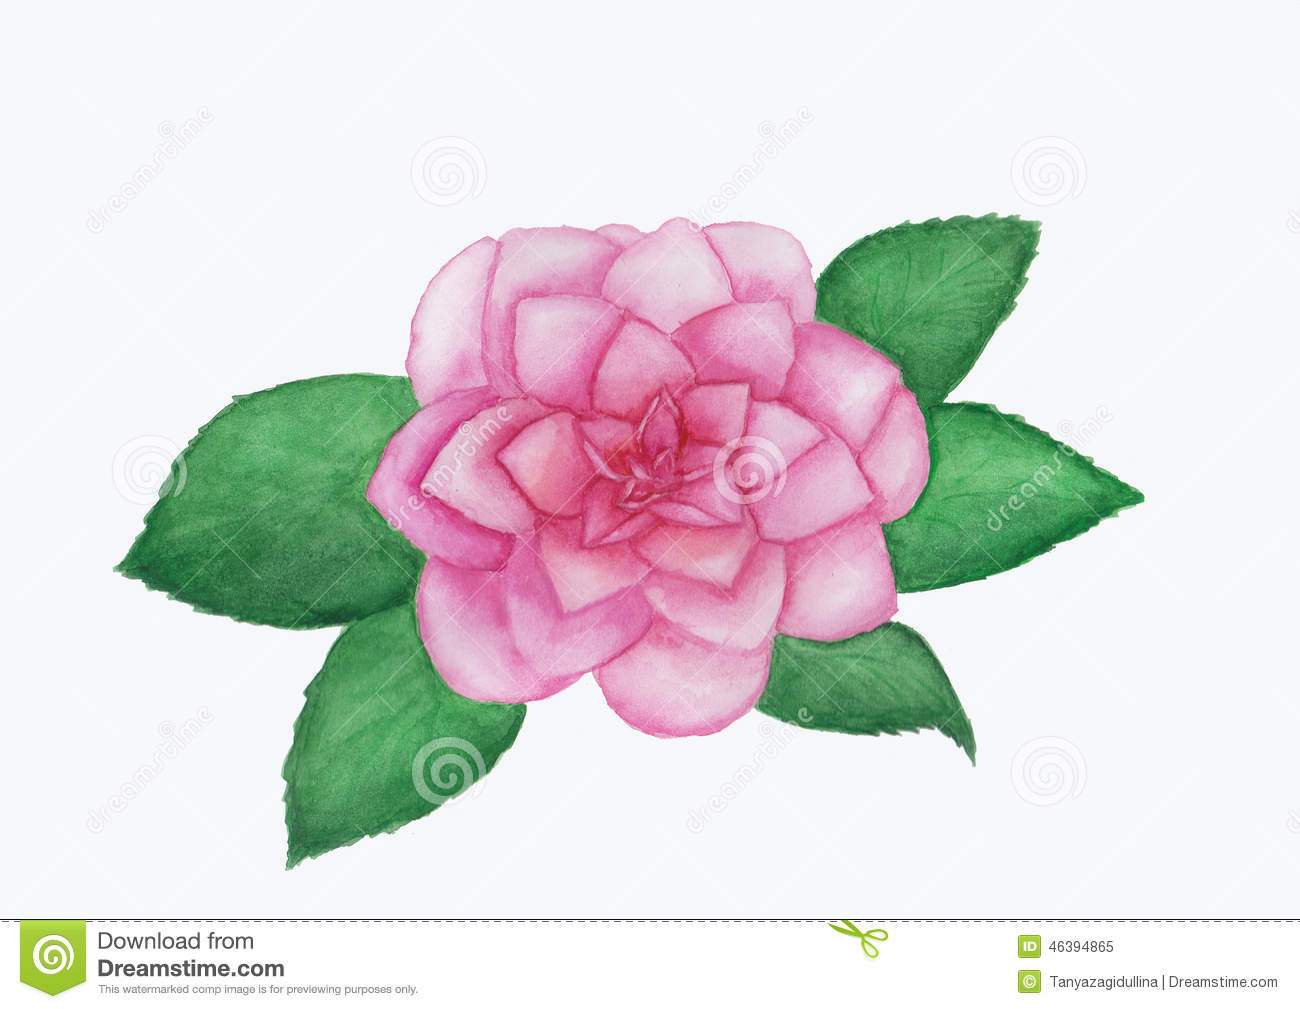 Camellia Illustration Camellia Flower Waterc...